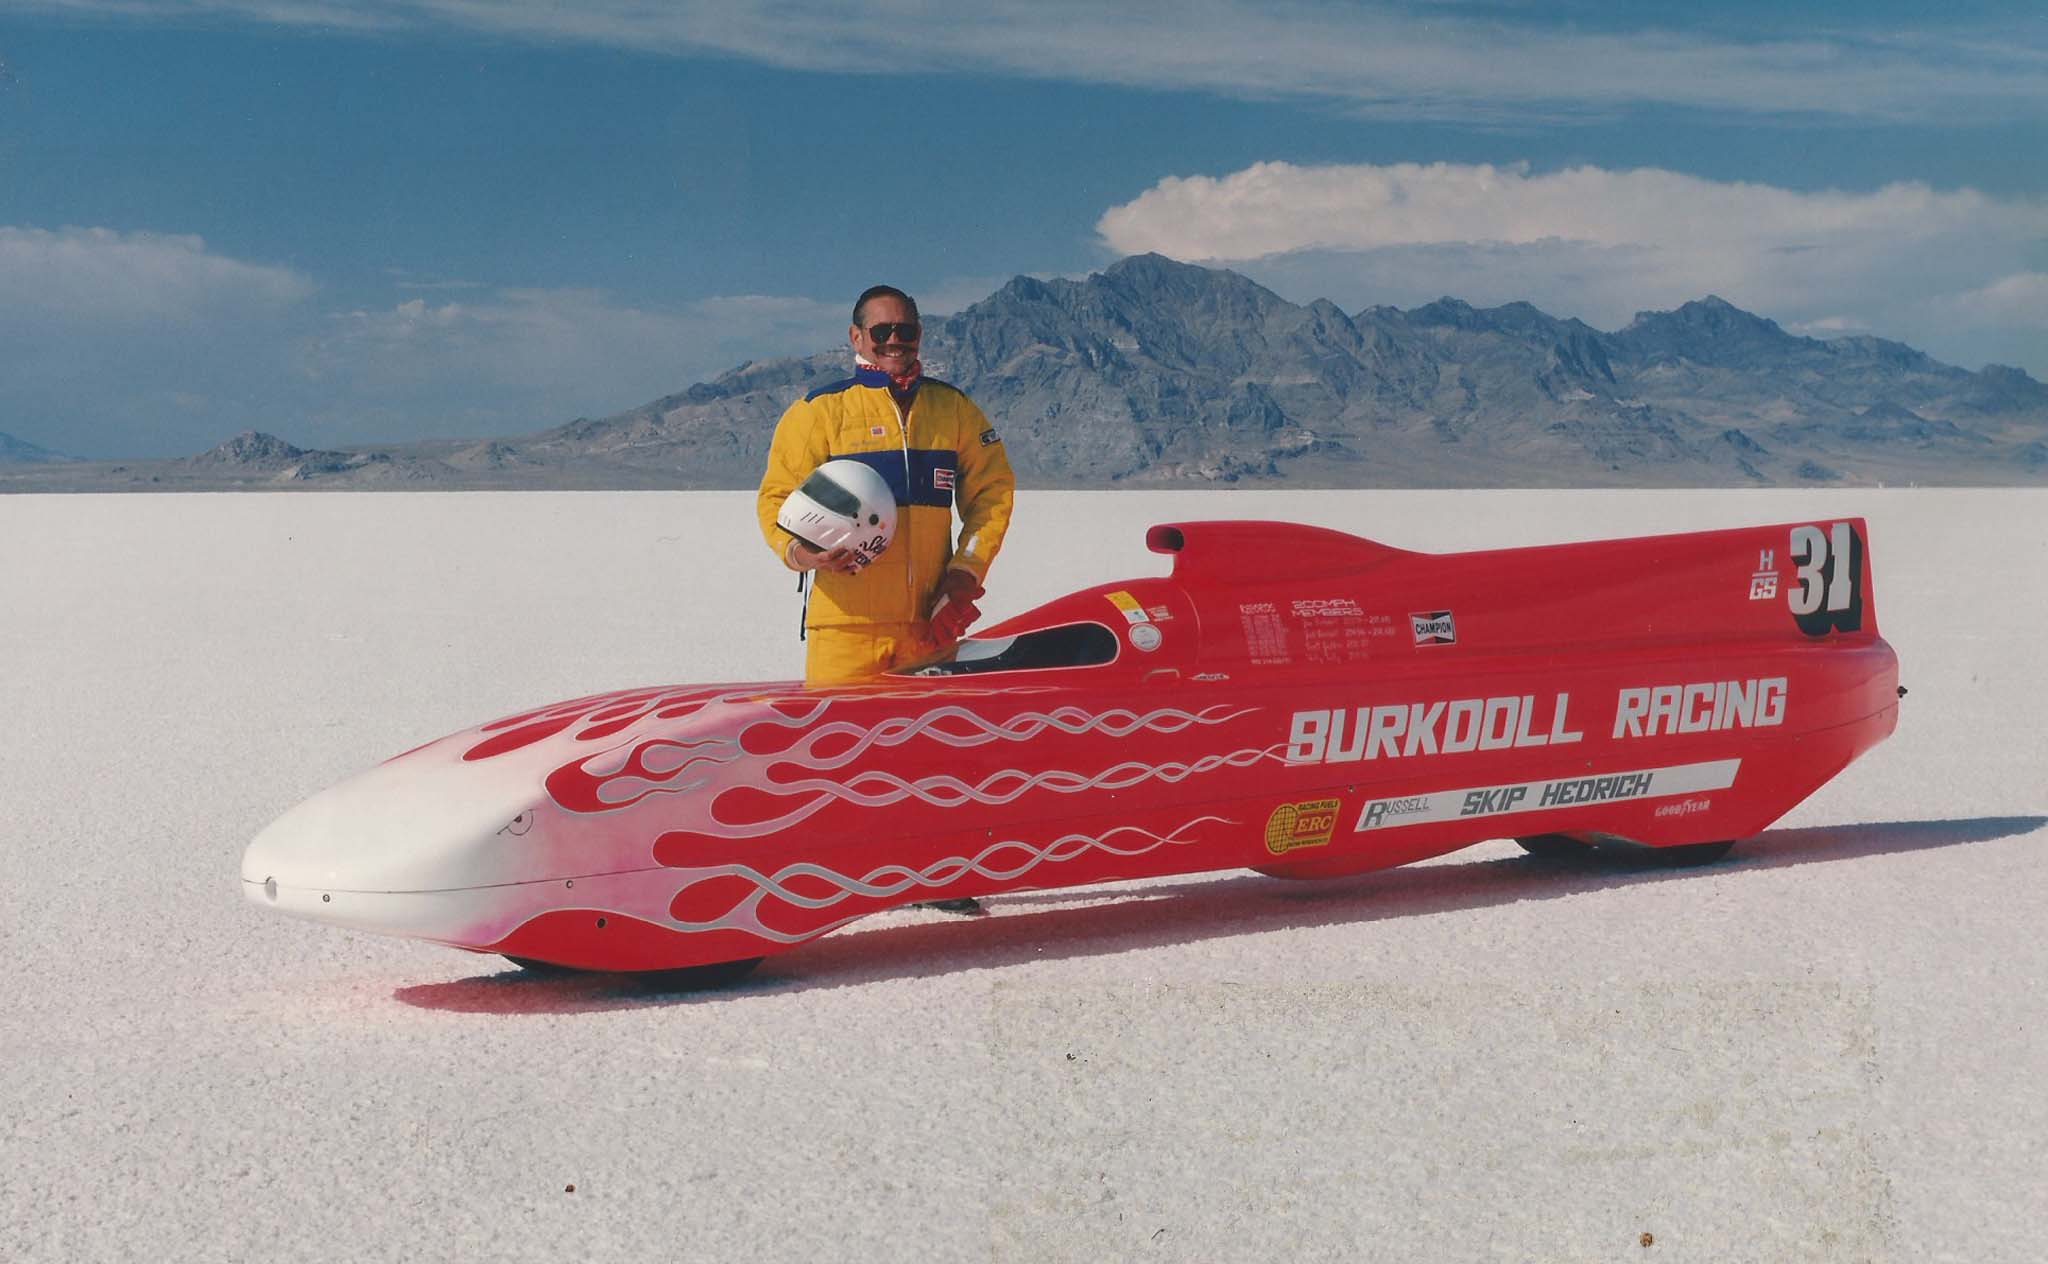 """When Skip returned to Bonneville in 1990, he met Jim and Juley Burkdoll and struck up a conversation about their streamliner. """"I told Jim about my background, Jim put me in the car, and by 4:30 that afternoon I had my SCTA license."""" Before Skip moved on to build his own land speed racer, he reached close to record speed in class of 214.426 mph. """"I drove for Jim and Juley for two years before I decided to build my own car in `96. We had a wonderful relationship."""""""